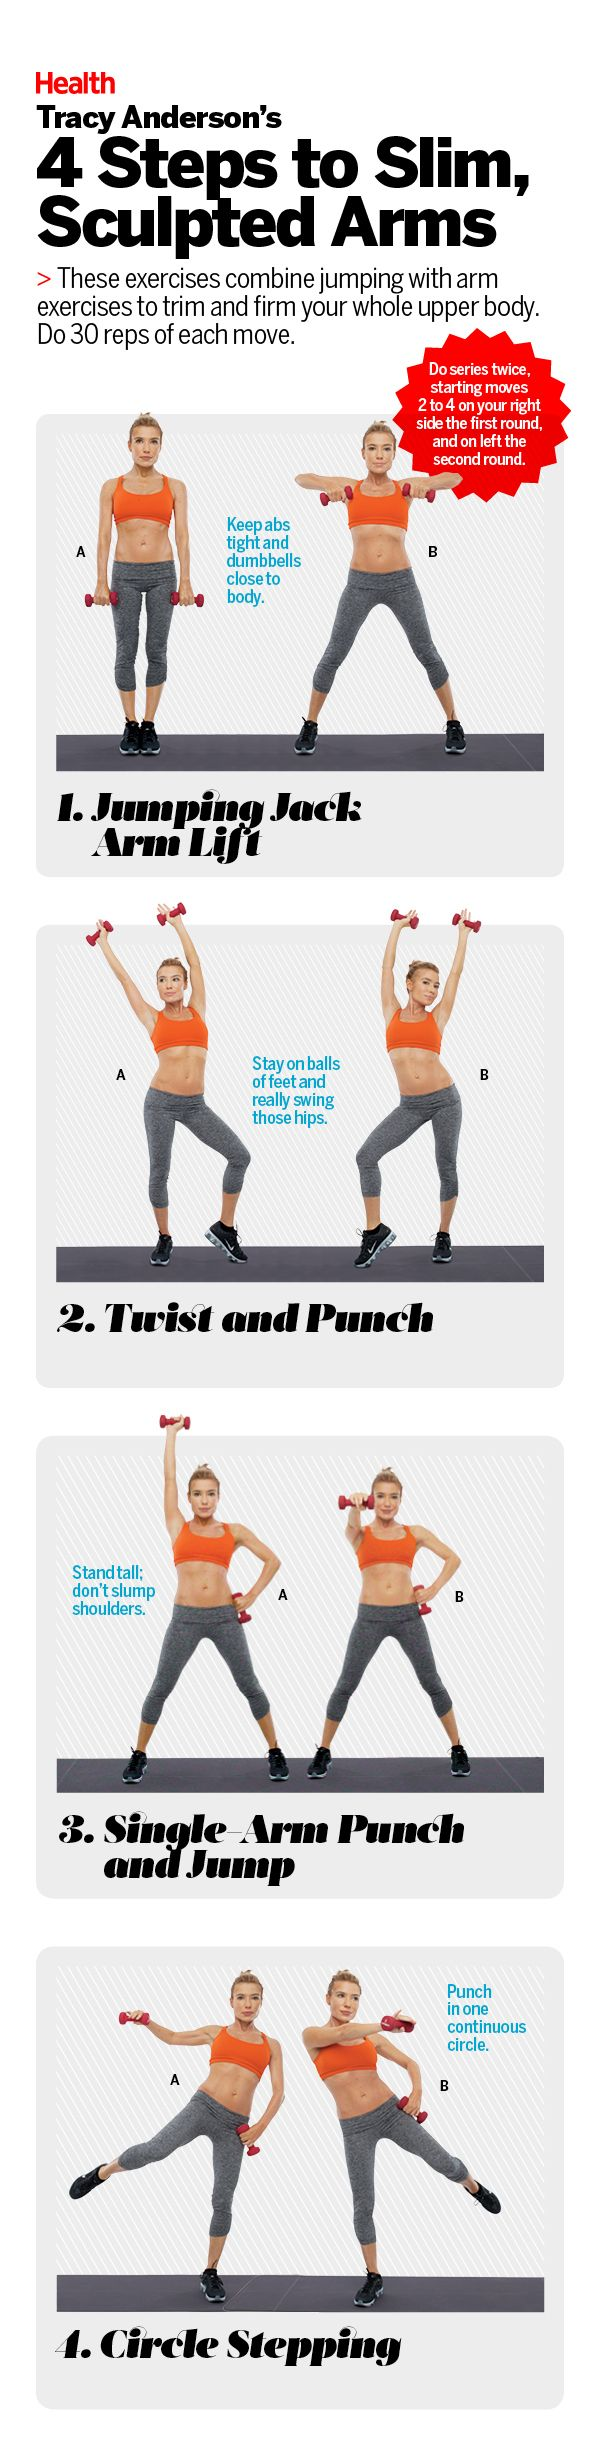 4 Steps to Slim, Sculpted Arms